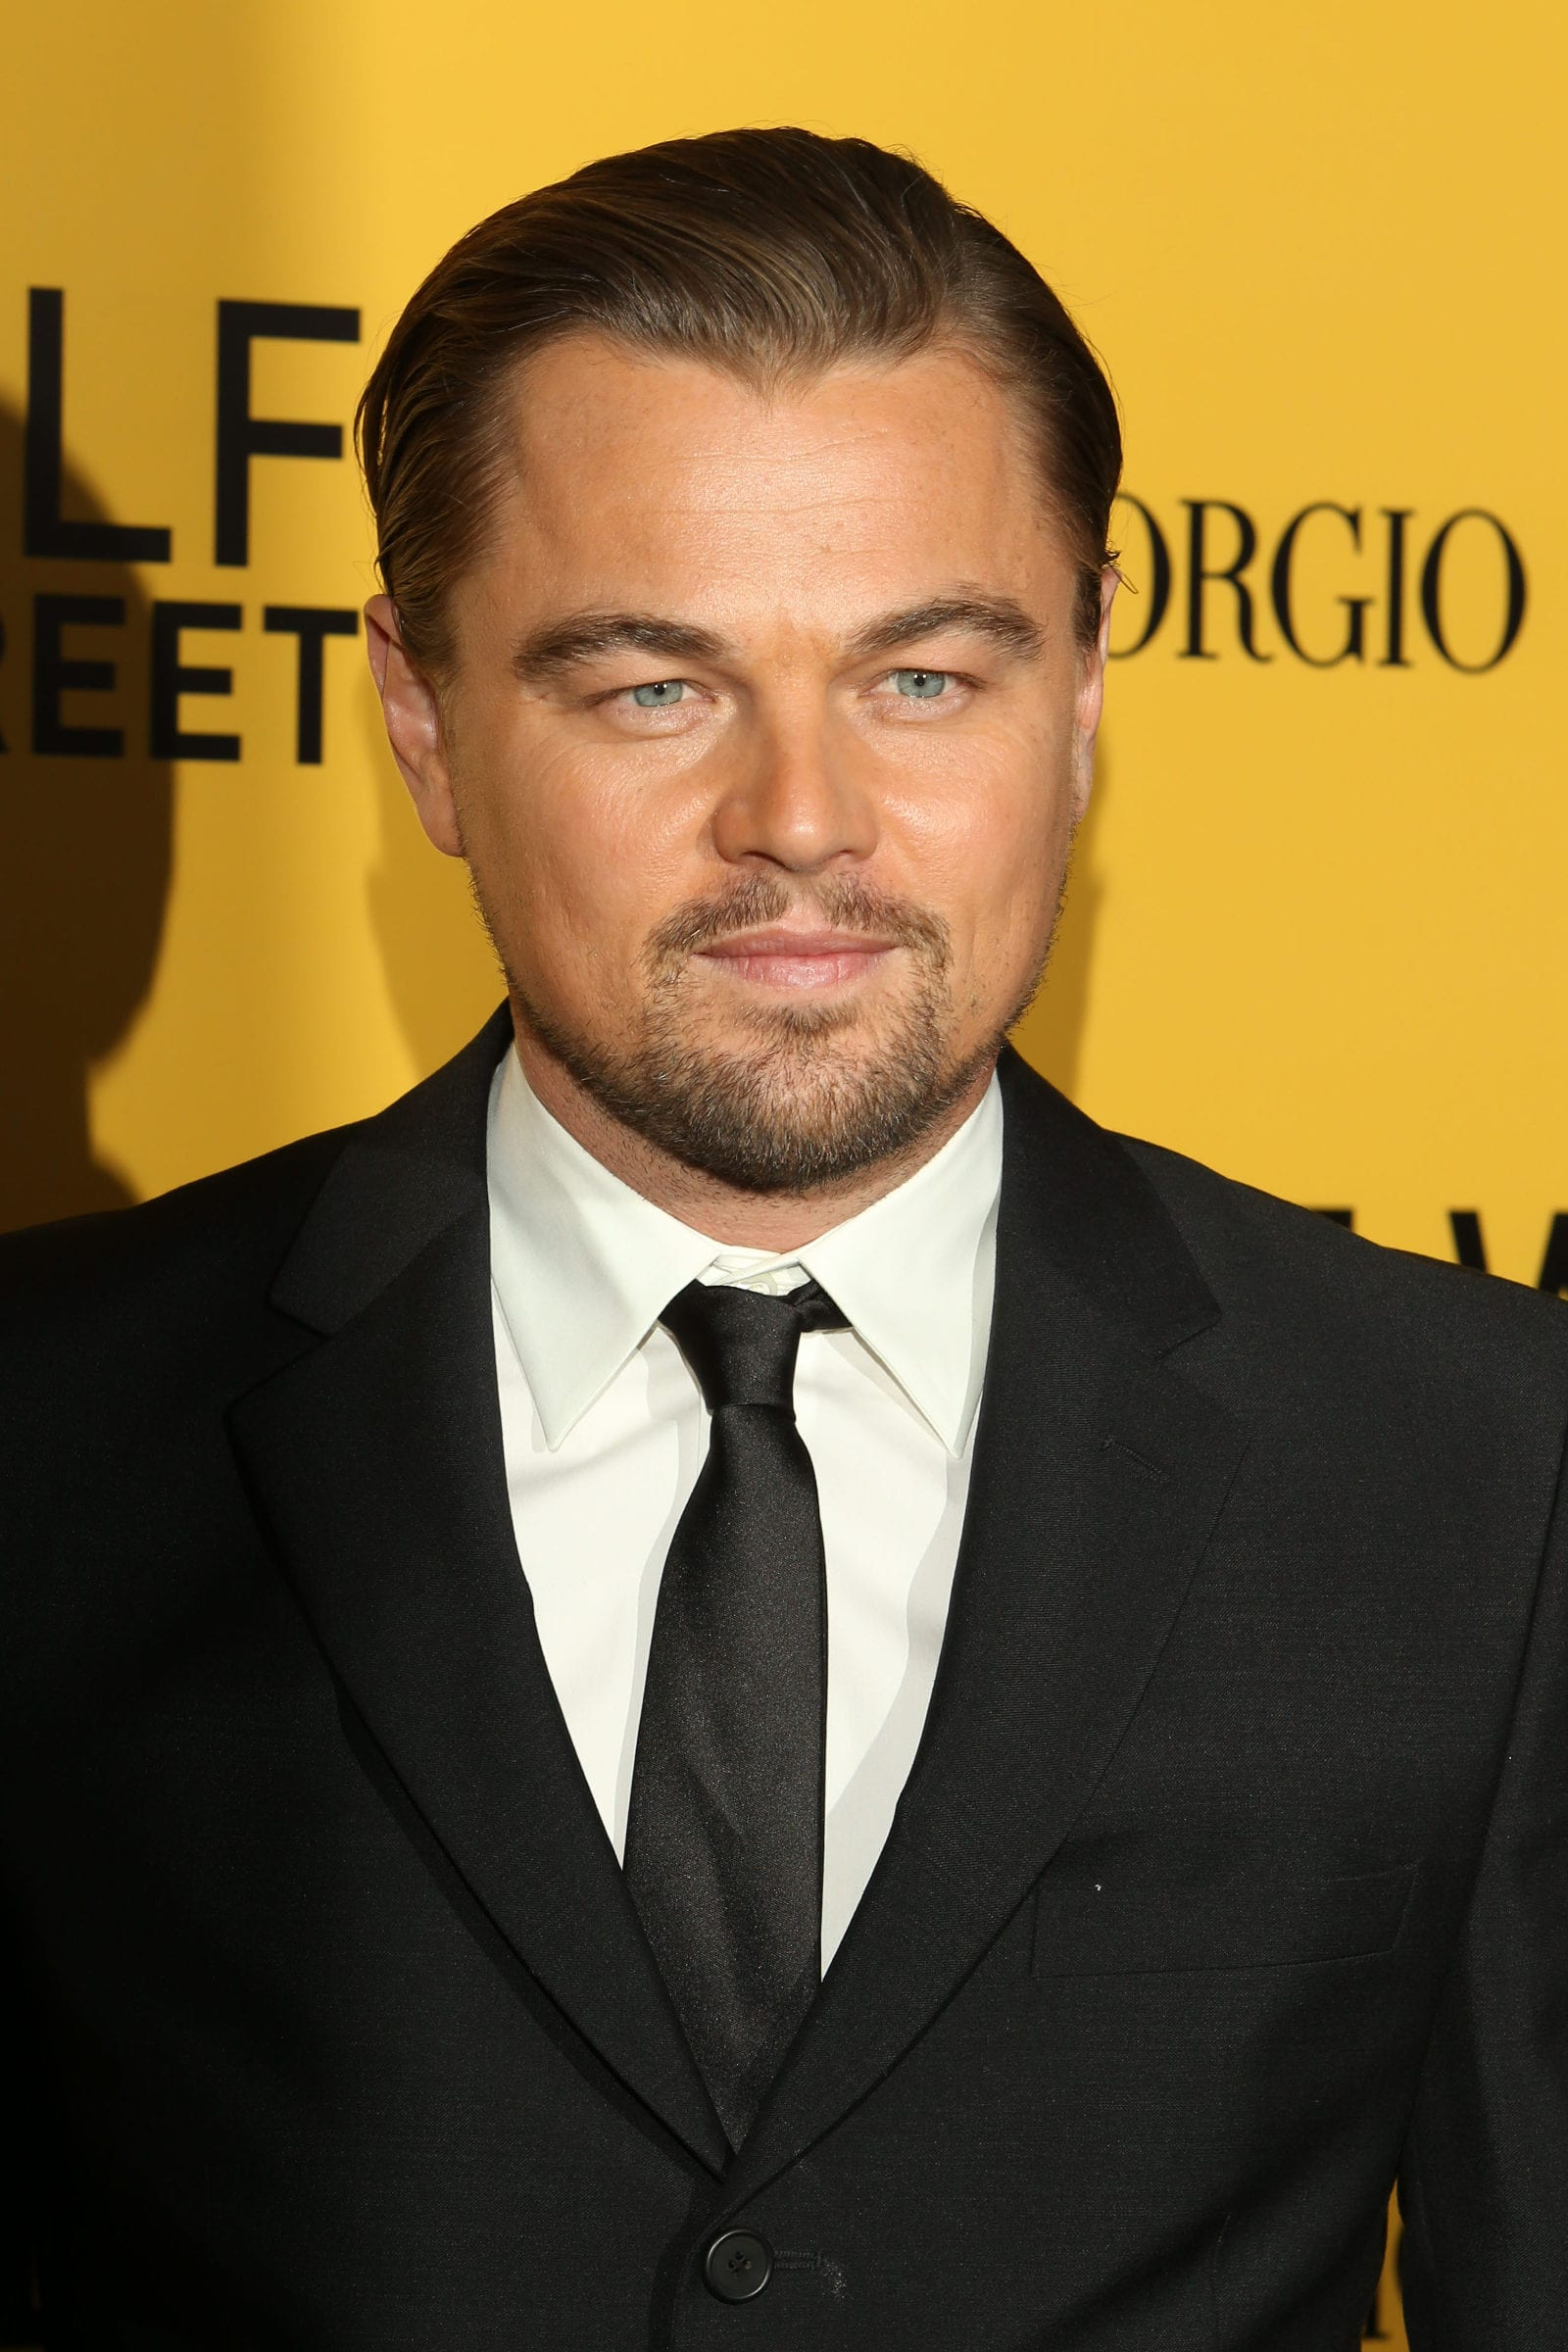 Leonardo DiCaprio Windows Peak Slicked Back